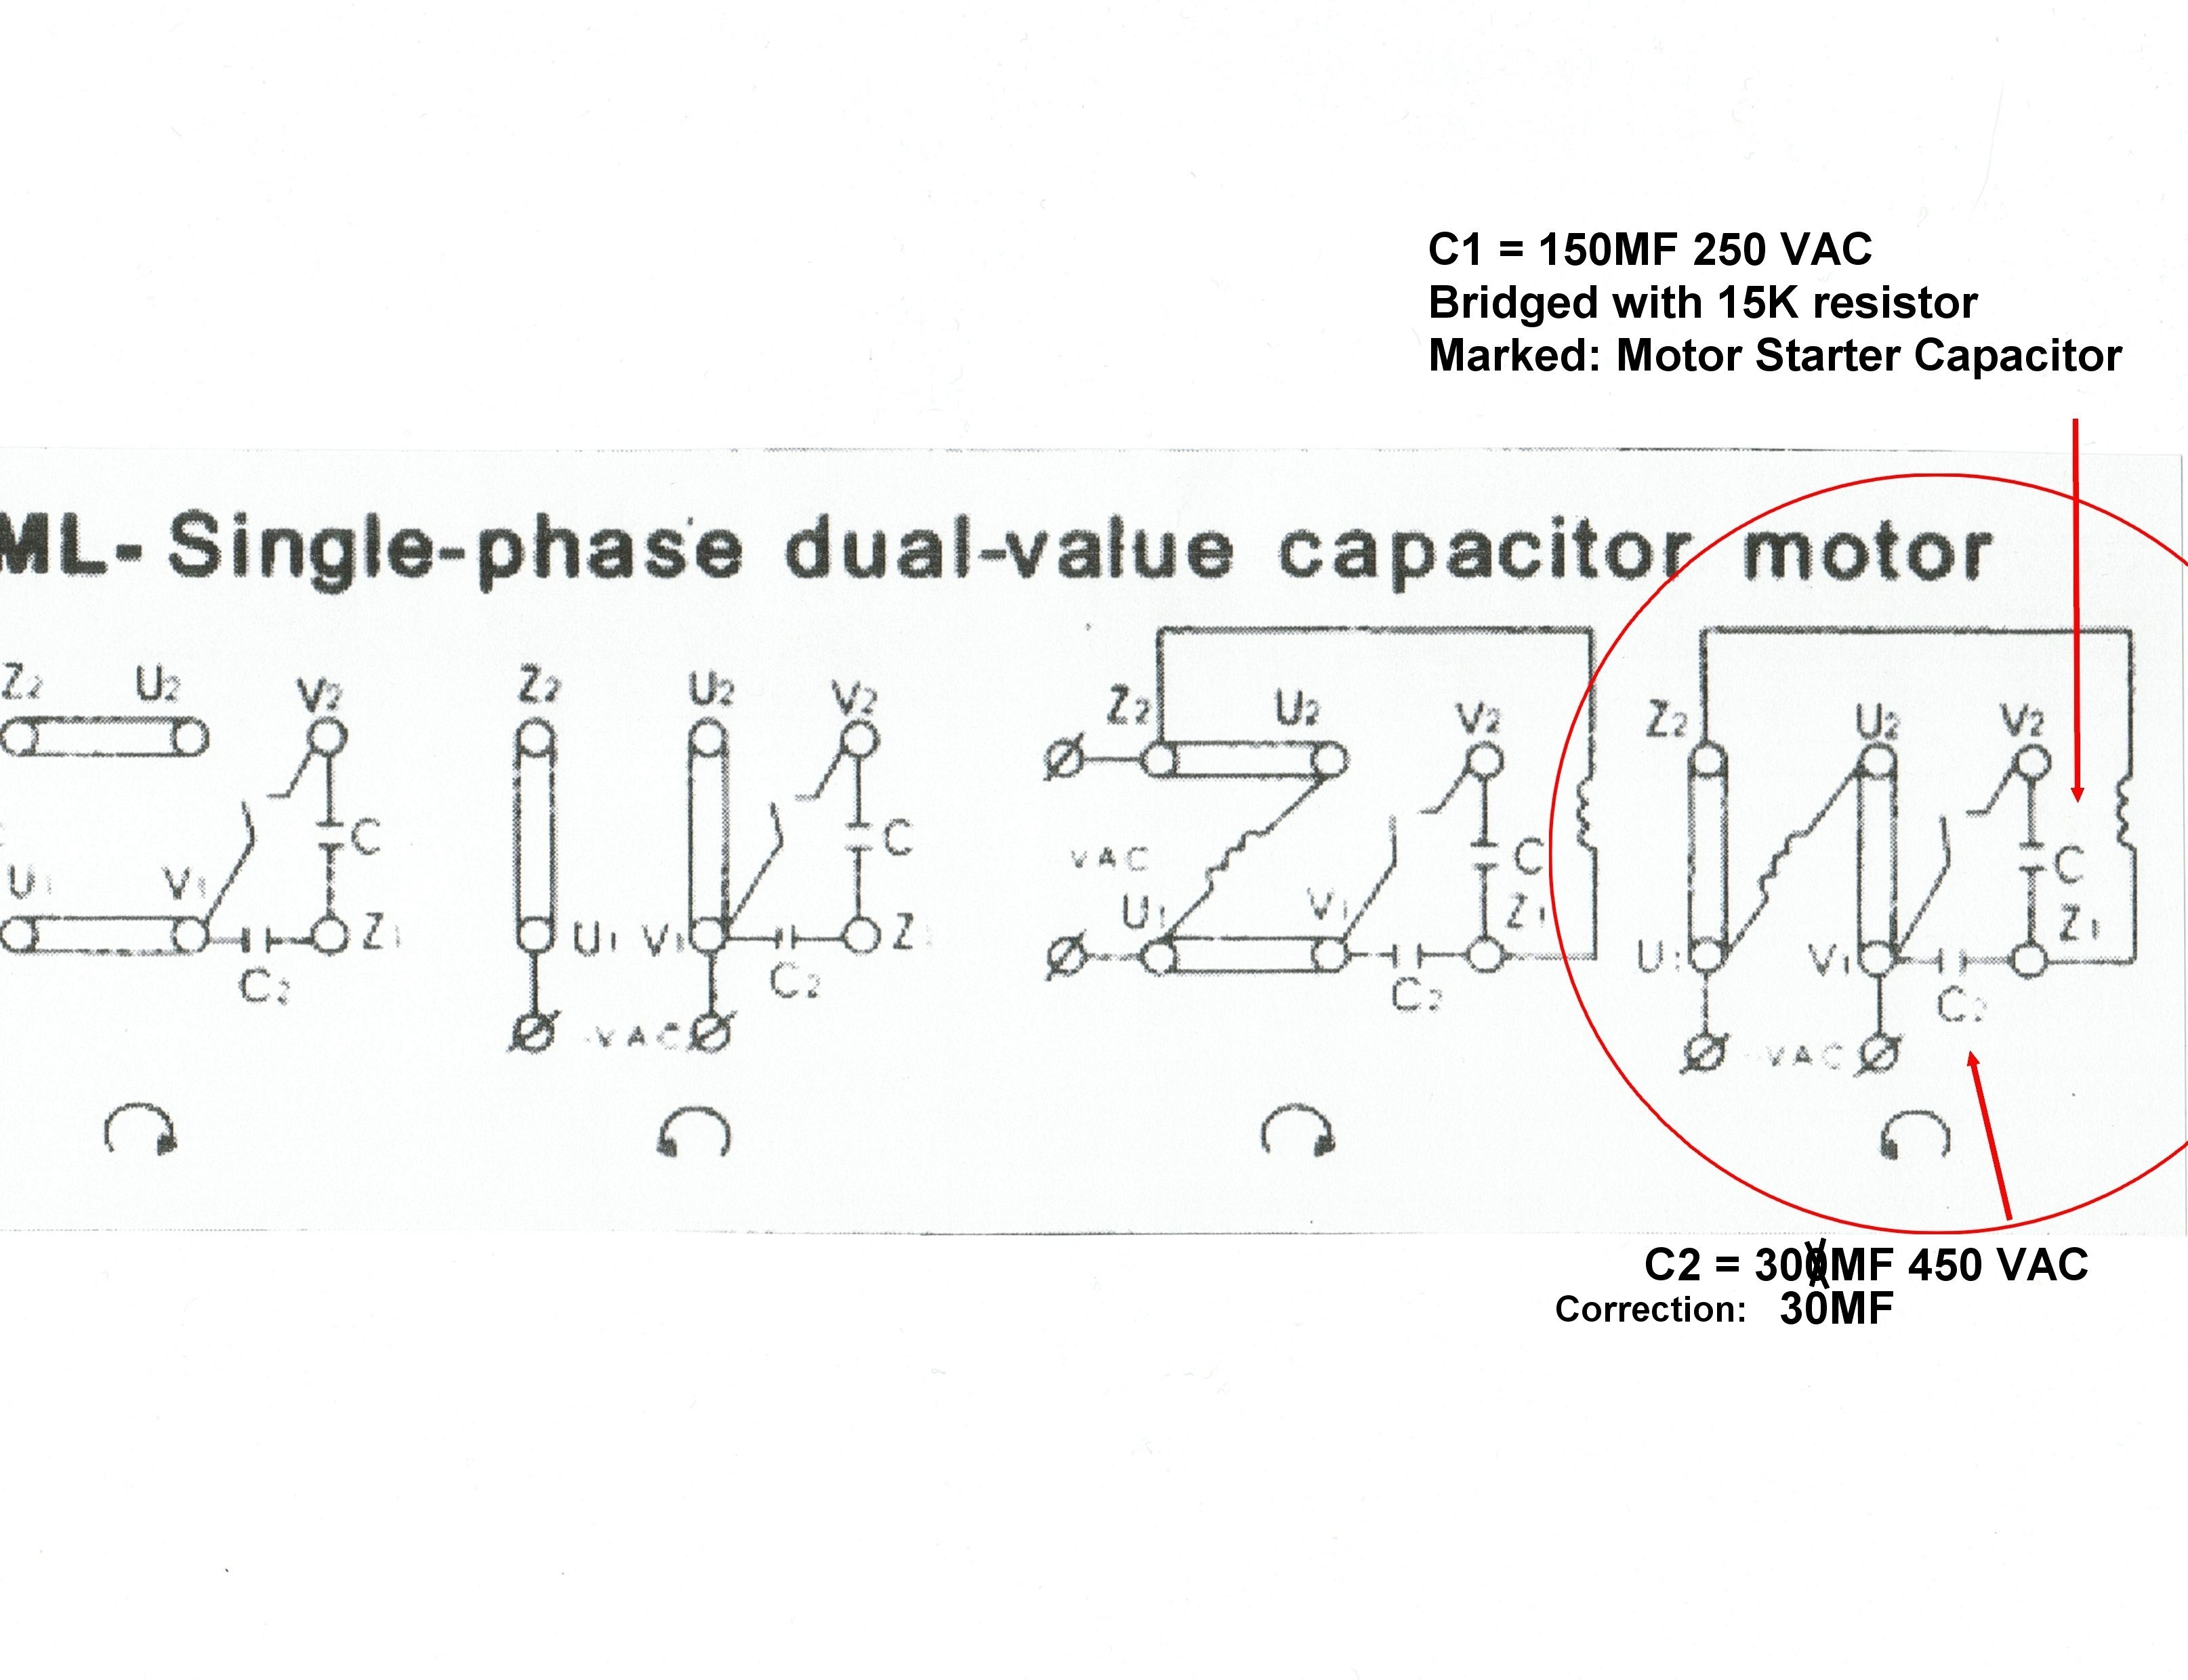 6 Lead Motor Wiring Diagram | Free Wiring Diagram